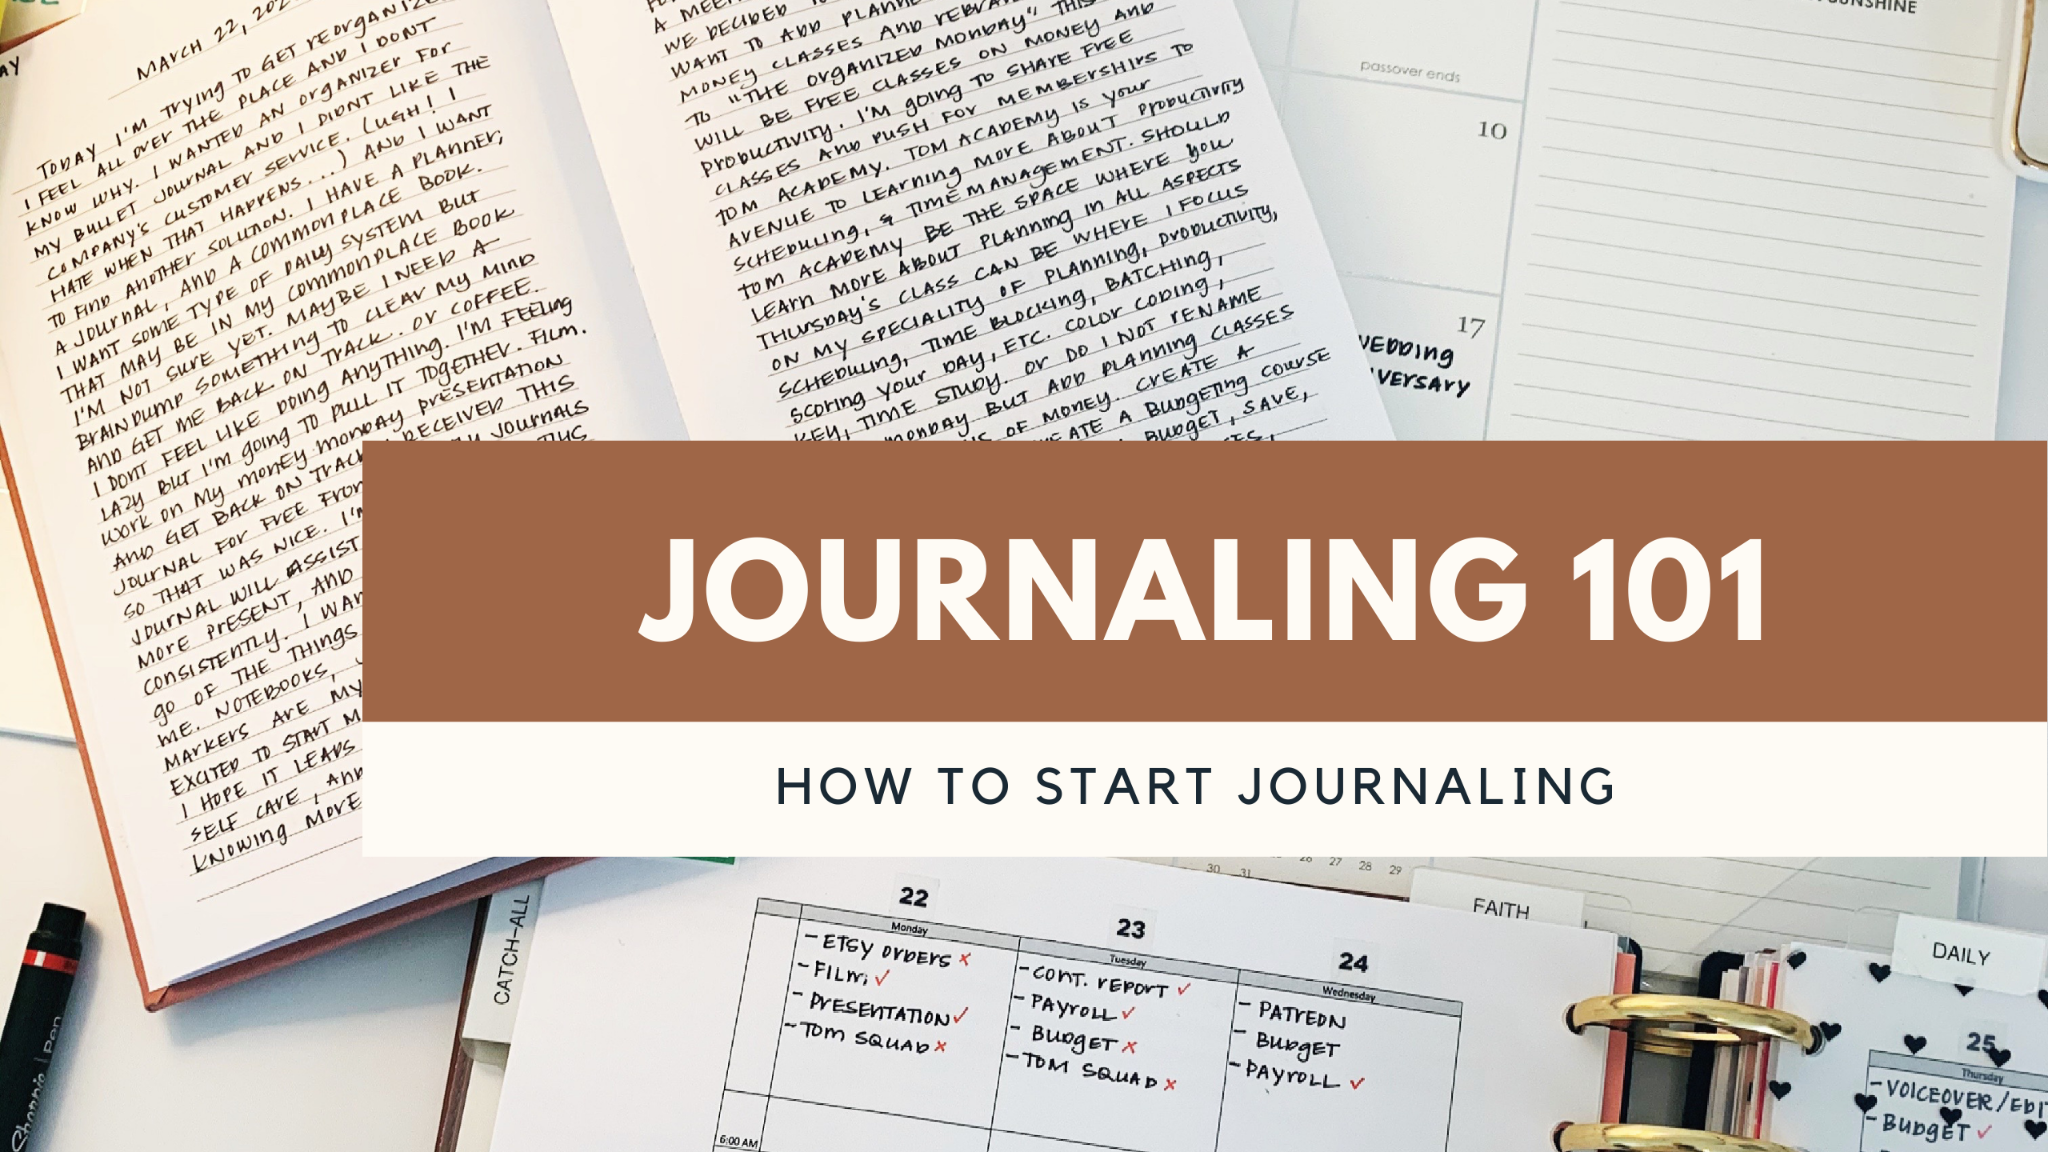 Journaling 101: How To Start Using A Journal